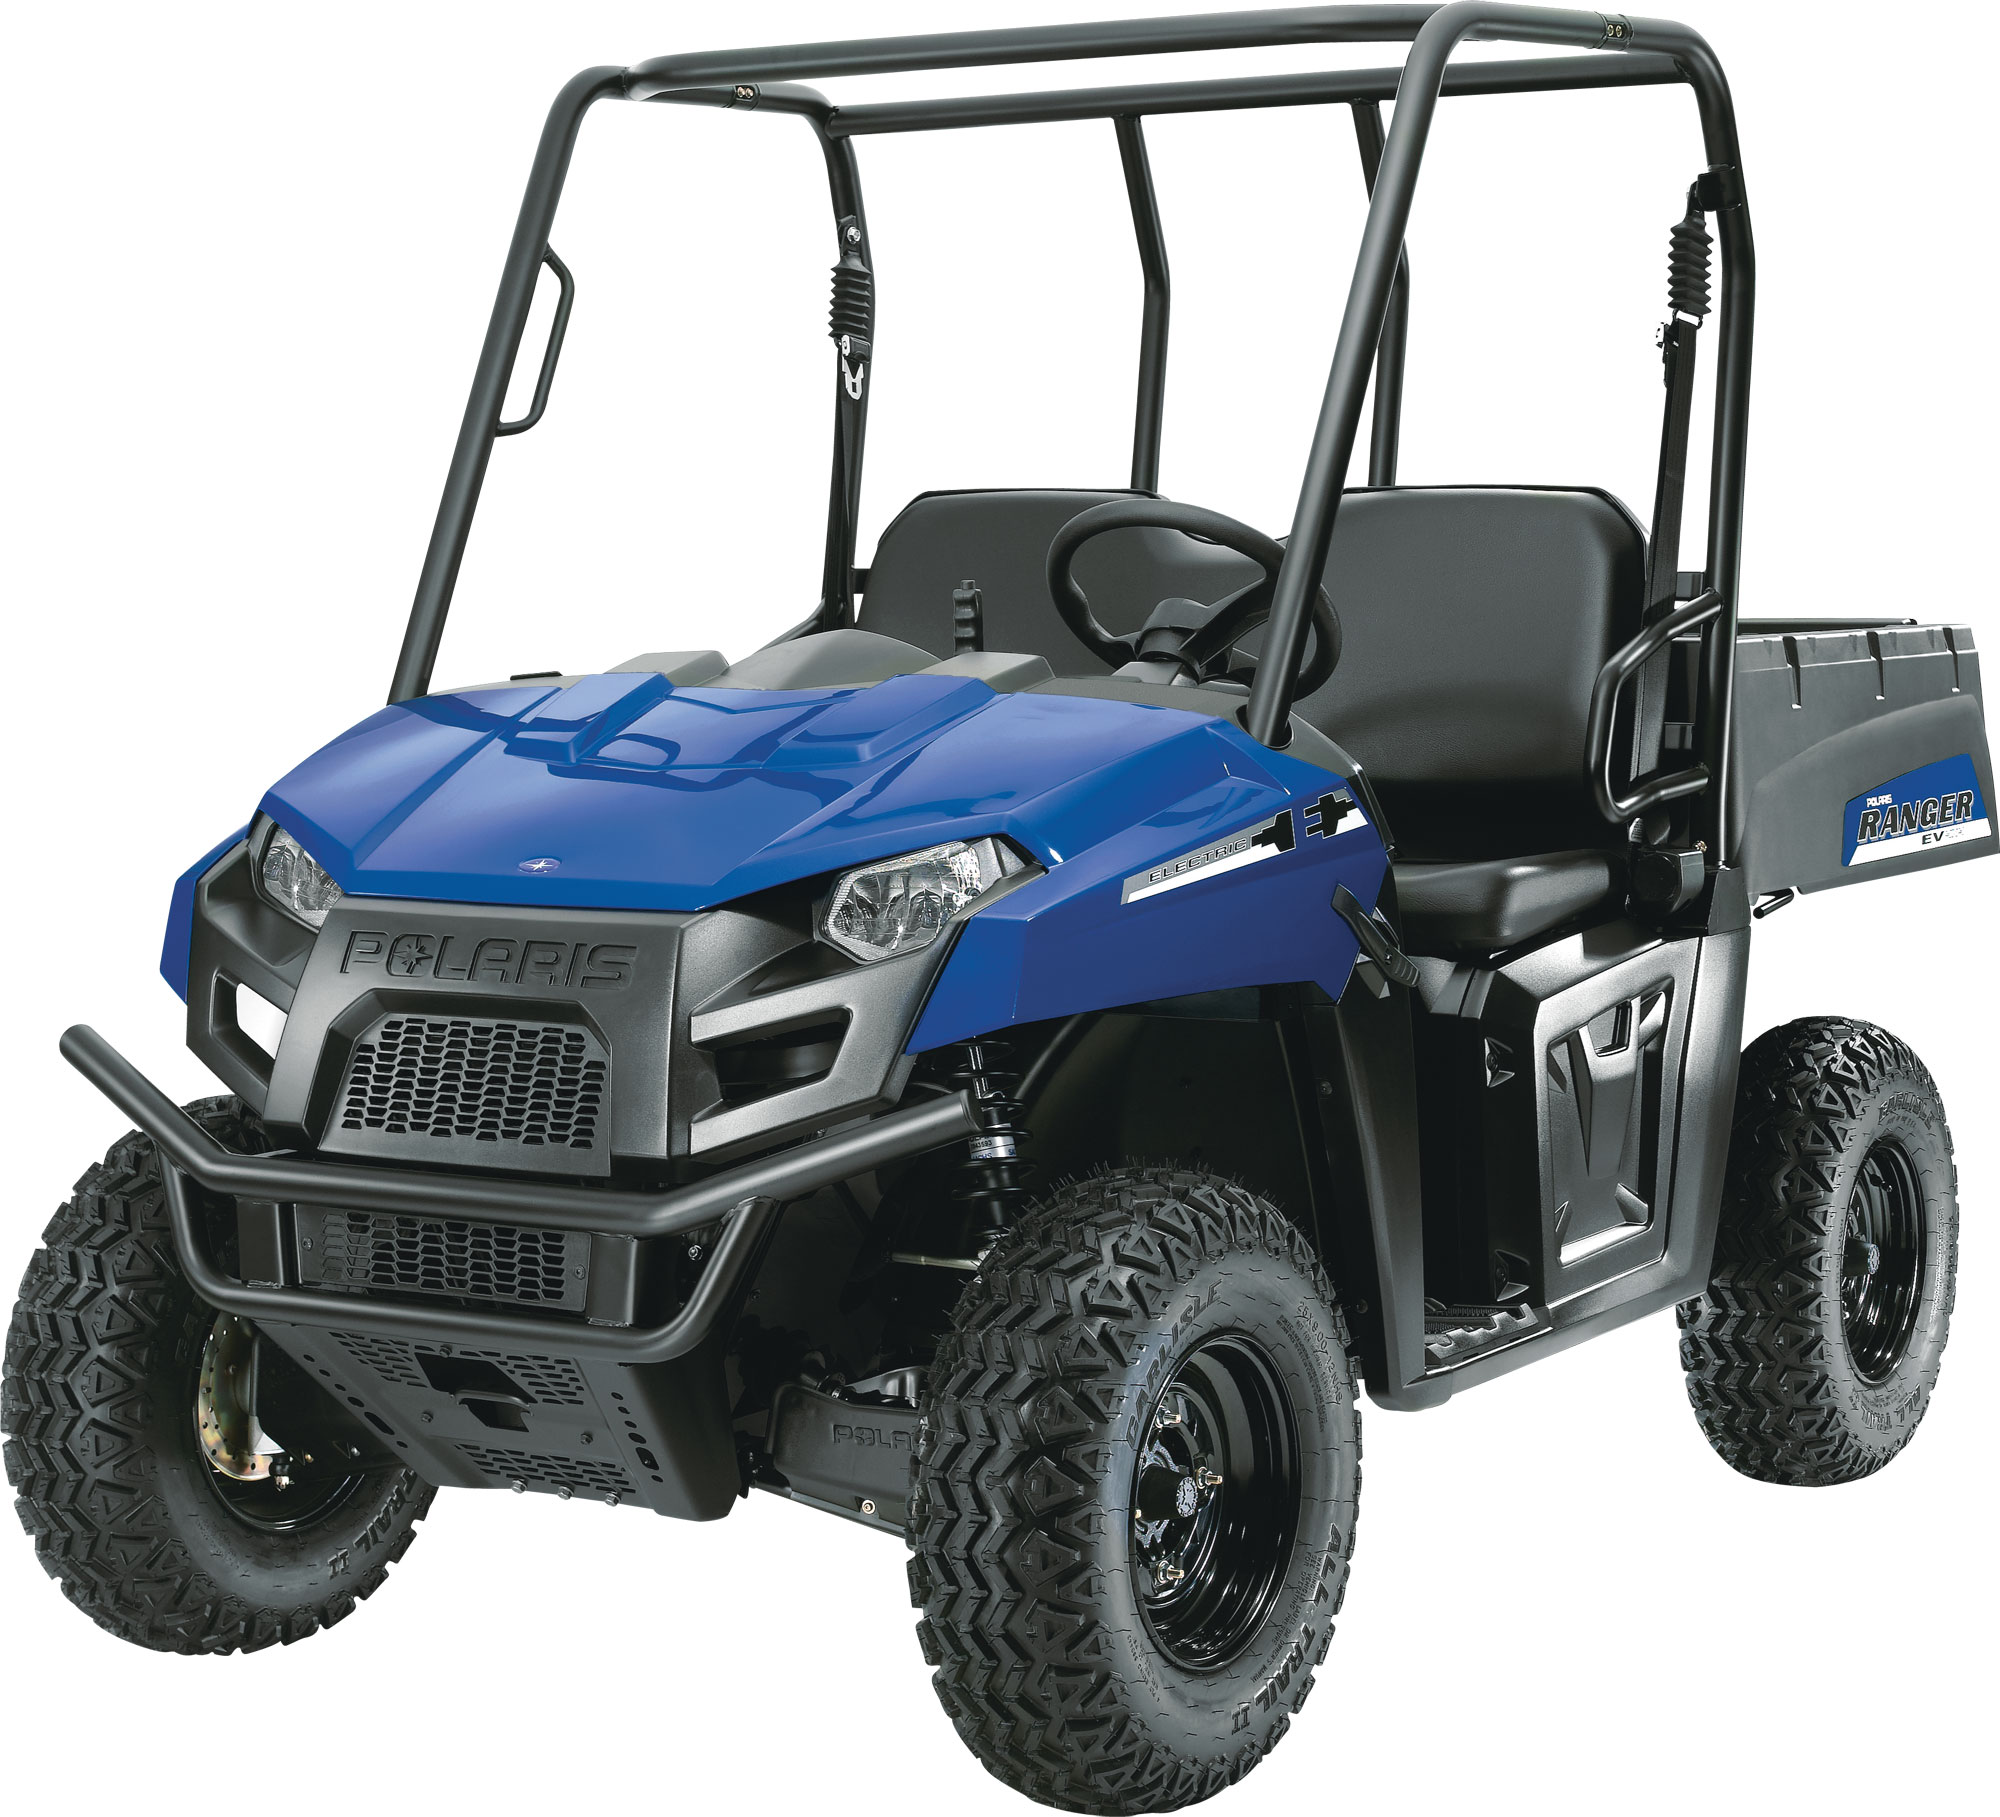 2012 polaris ranger ev review. Black Bedroom Furniture Sets. Home Design Ideas